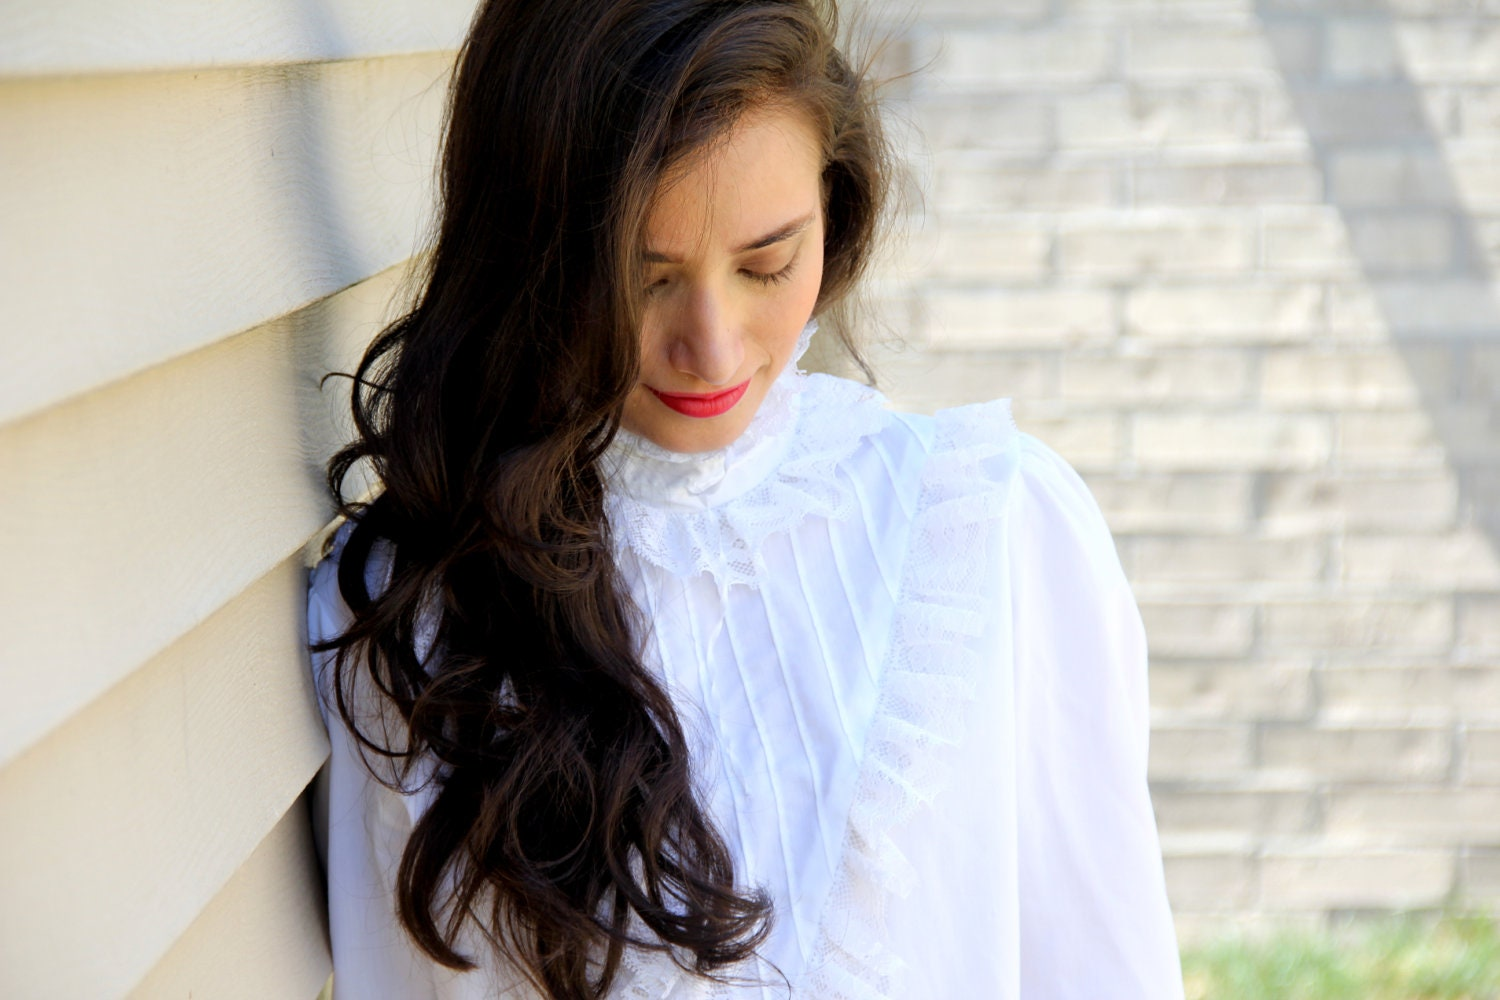 White Lace High Neck Blouse 99